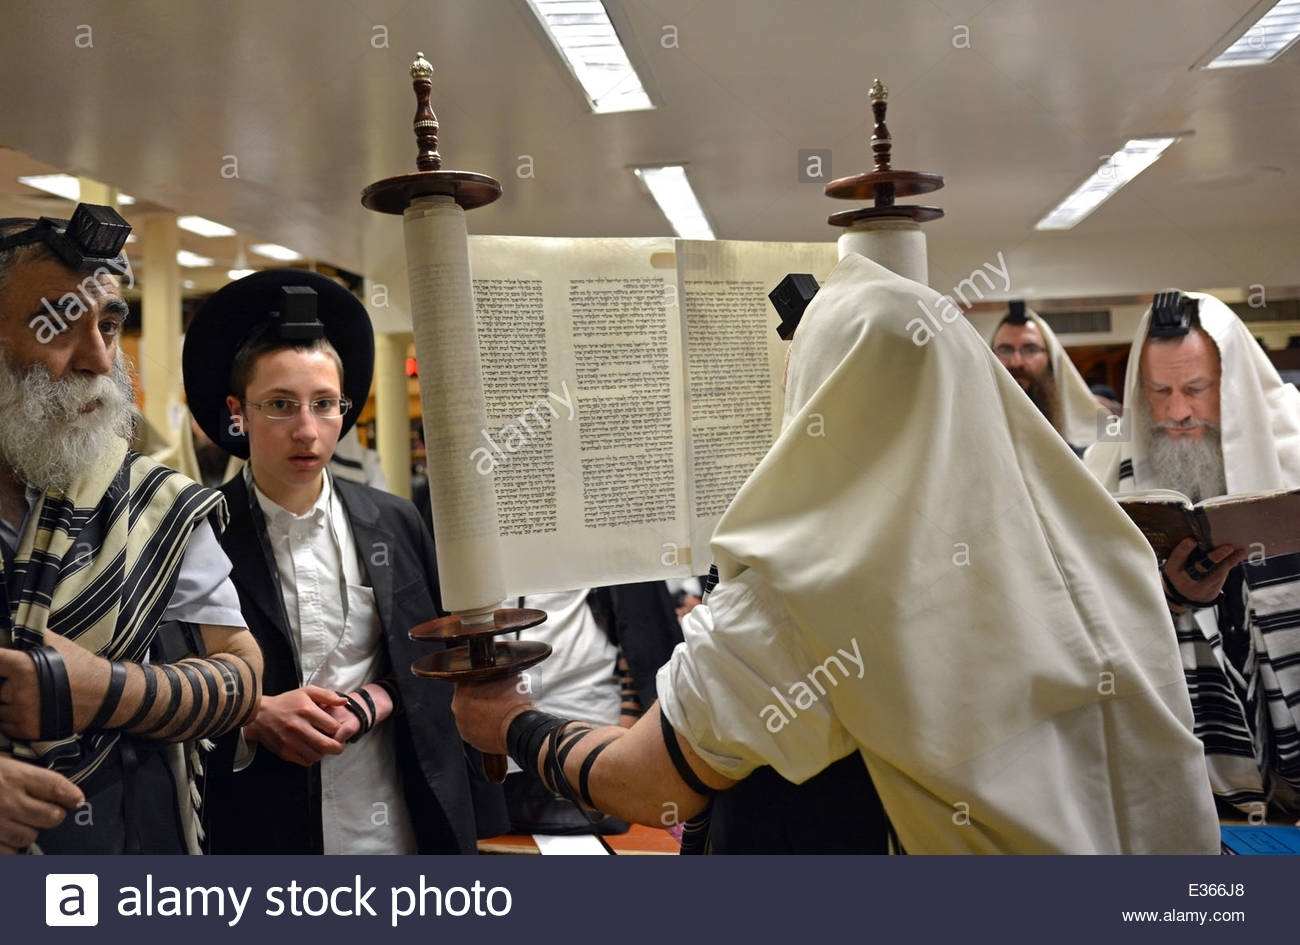 Torah Scroll Raised After A Reading At Morning Services At A with What Is The Next Reading For Torah